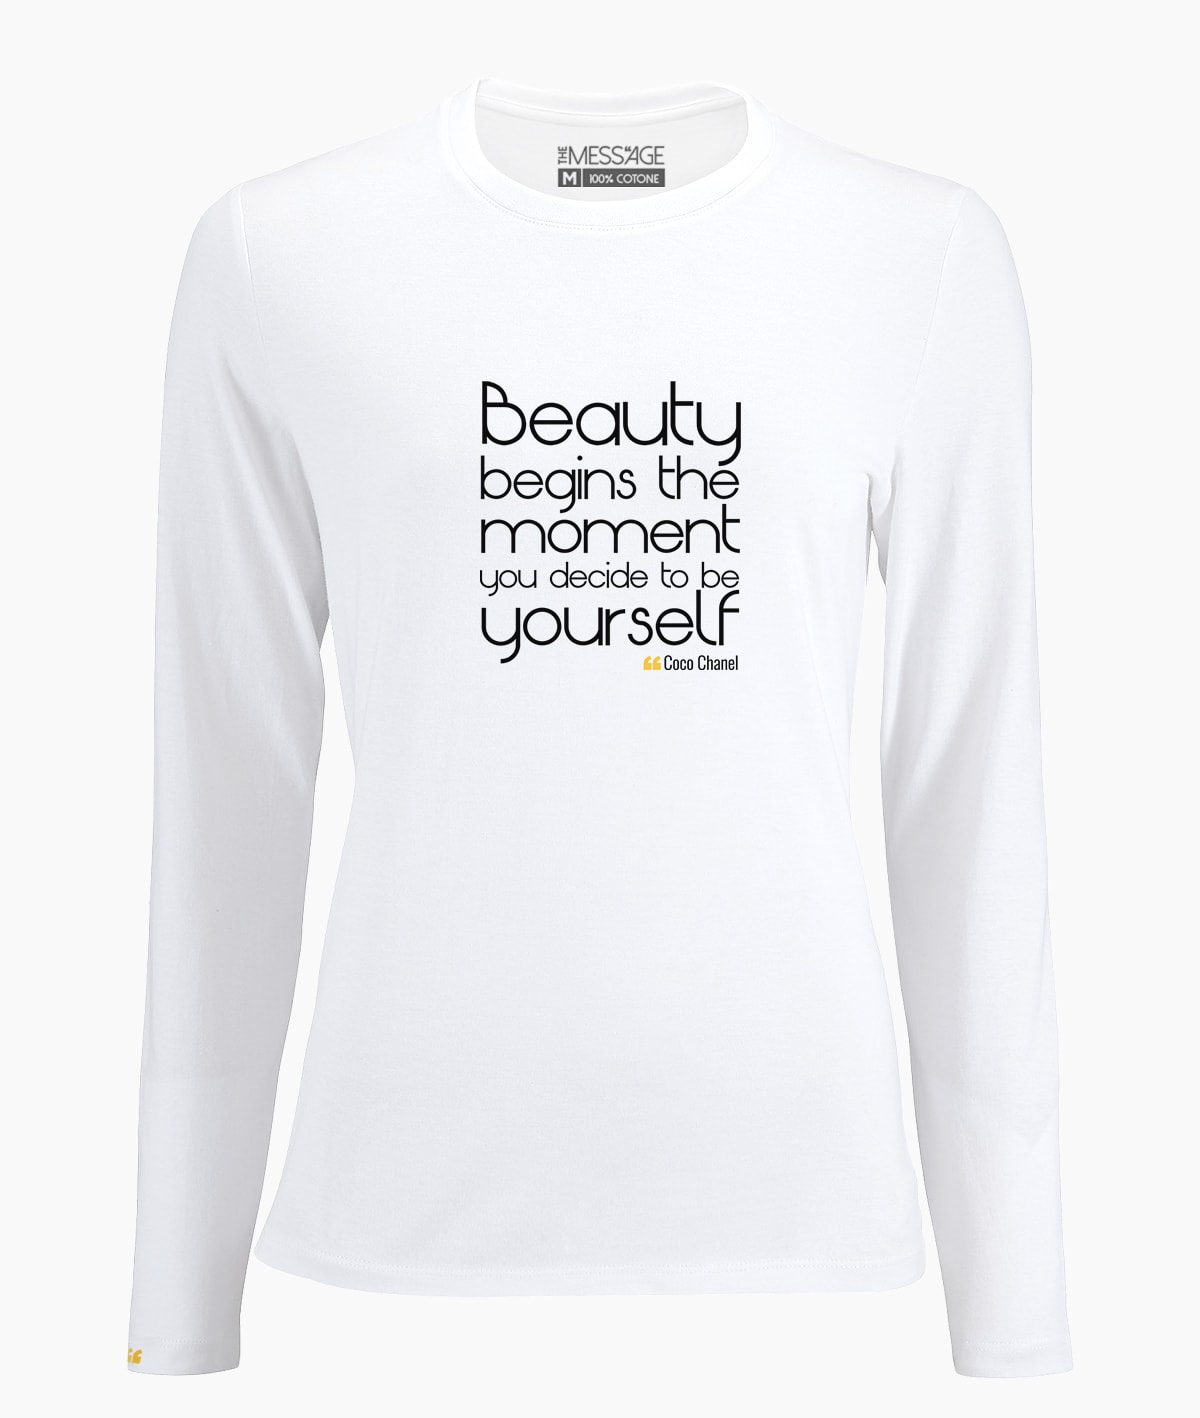 d52ab78e5d30b T-Shirt - Beauty begins the moment - Coco Chanel - Manica lunga